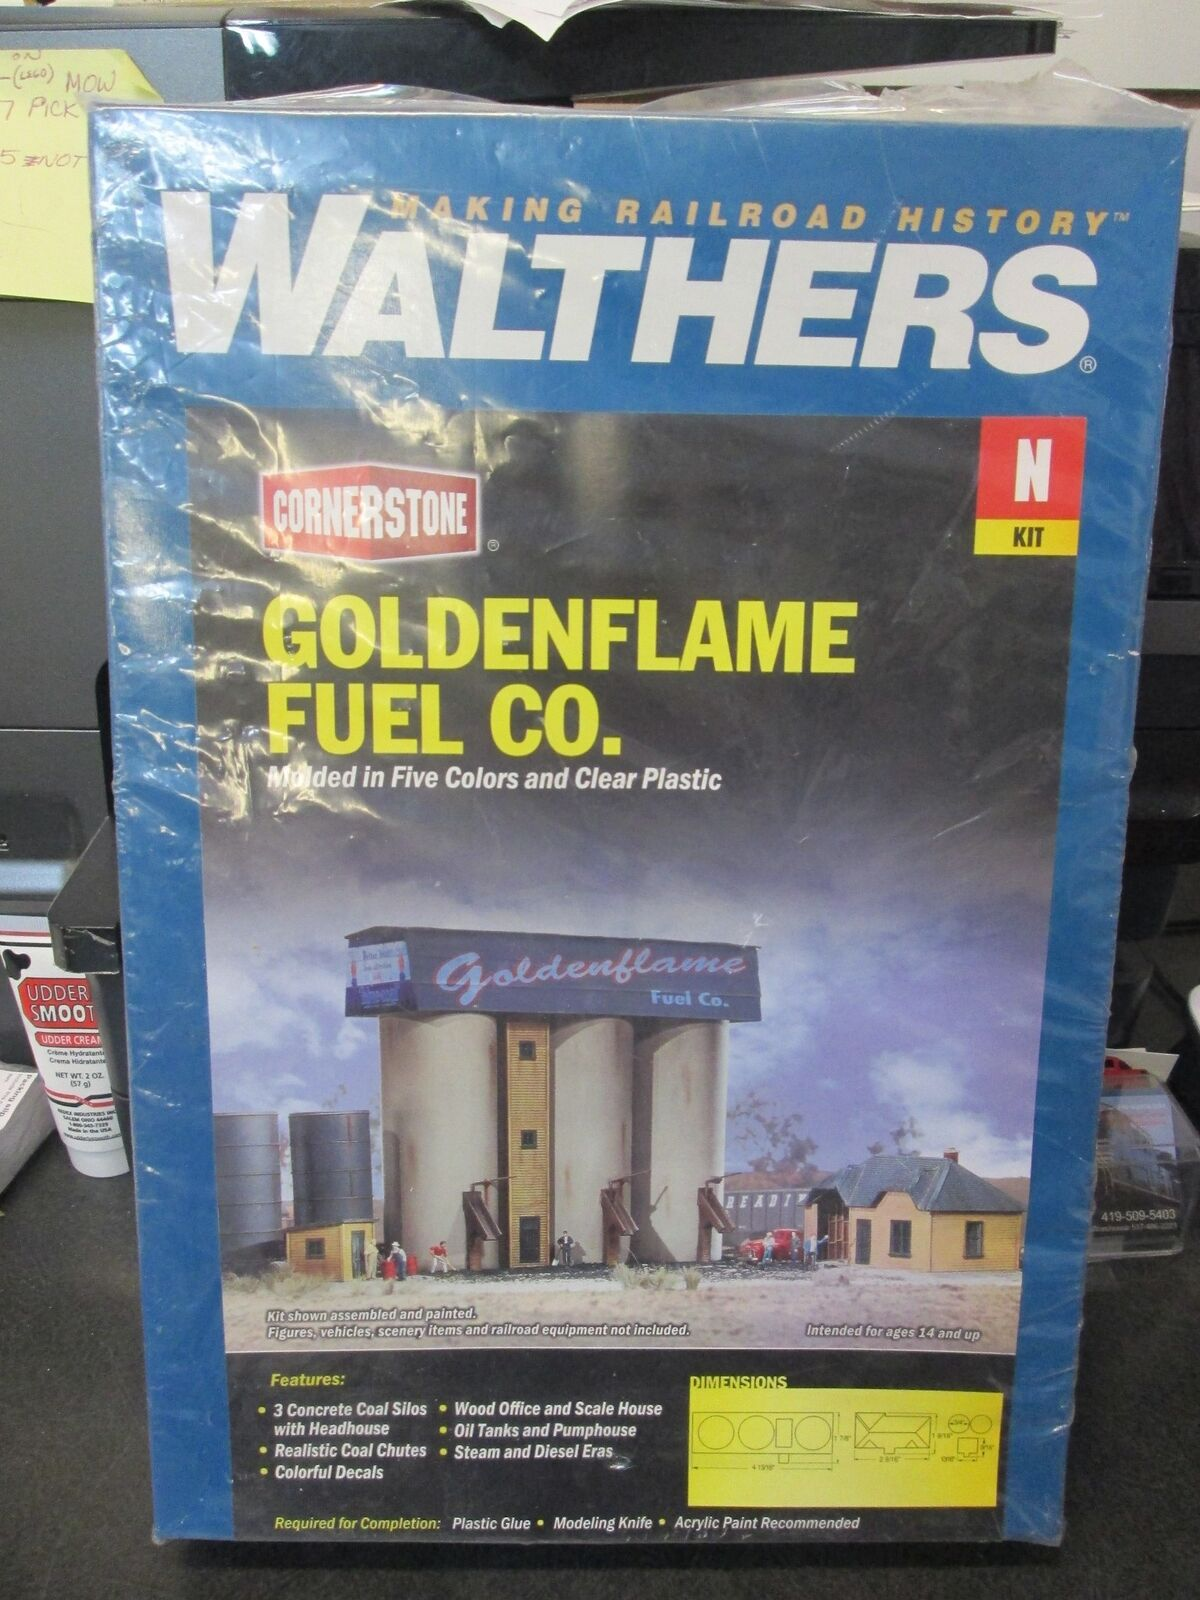 2nd goldenflame Fuel Co. N Building Kit - Walthers Cornerstone